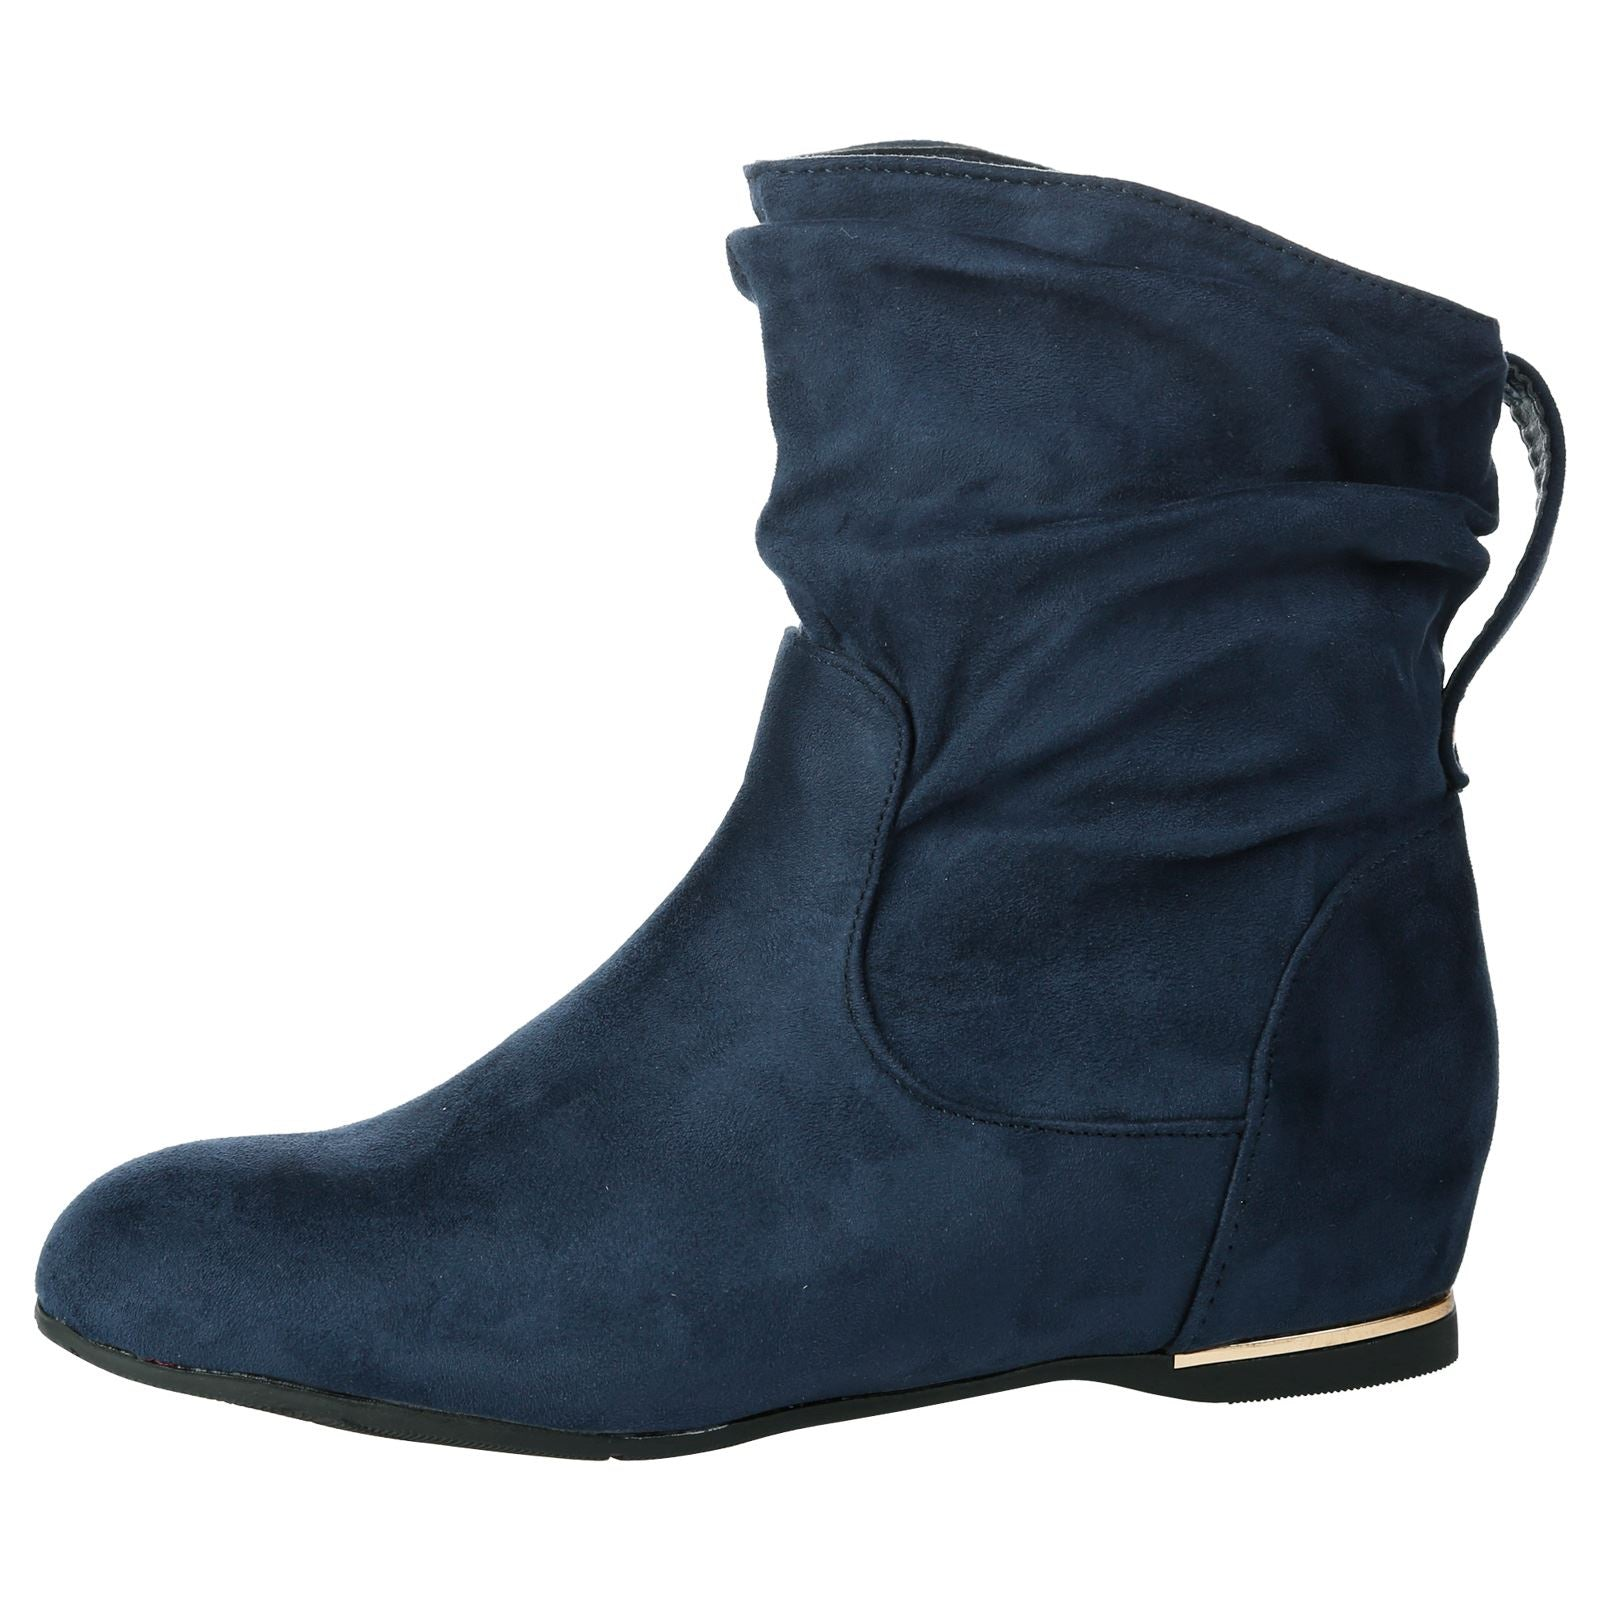 Daphne Hidden Wedge Slouchy Ankle Boots in Navy Blue Faux Suede